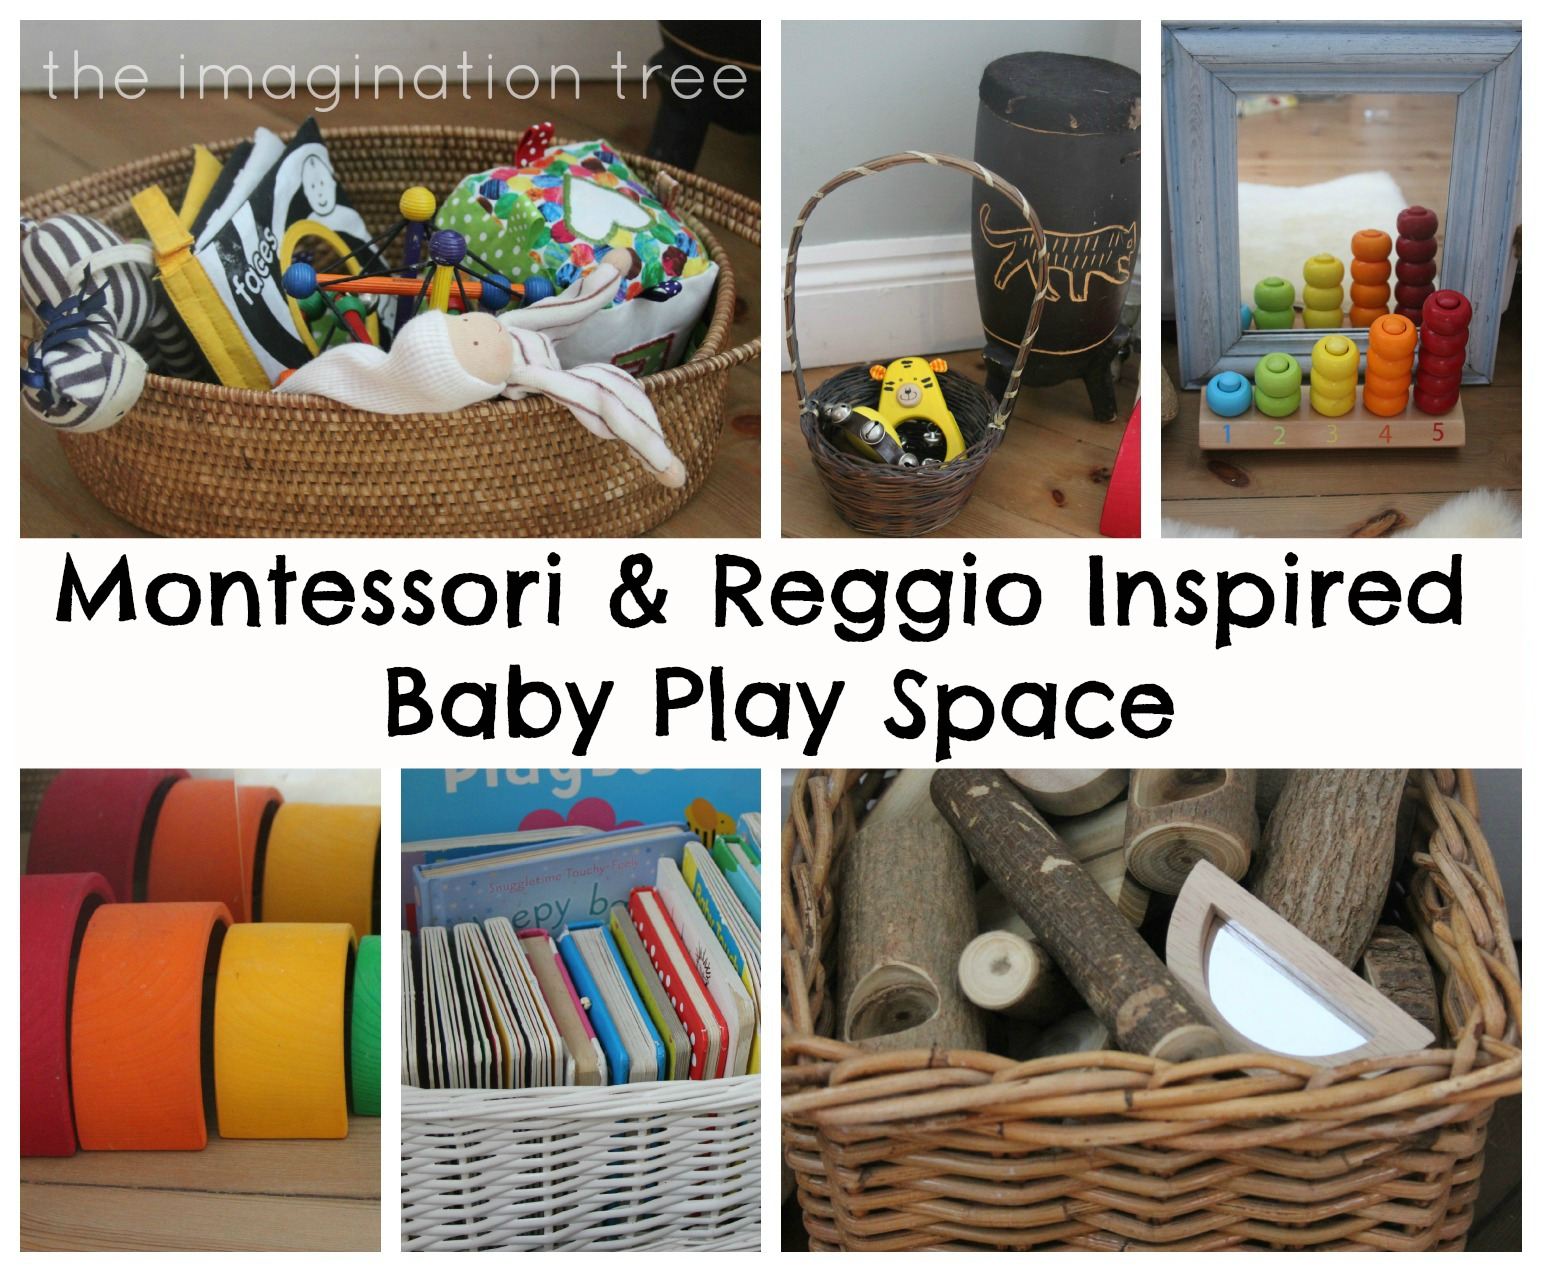 Baby Place Space for 6 18 Months Inspired by Montessori and